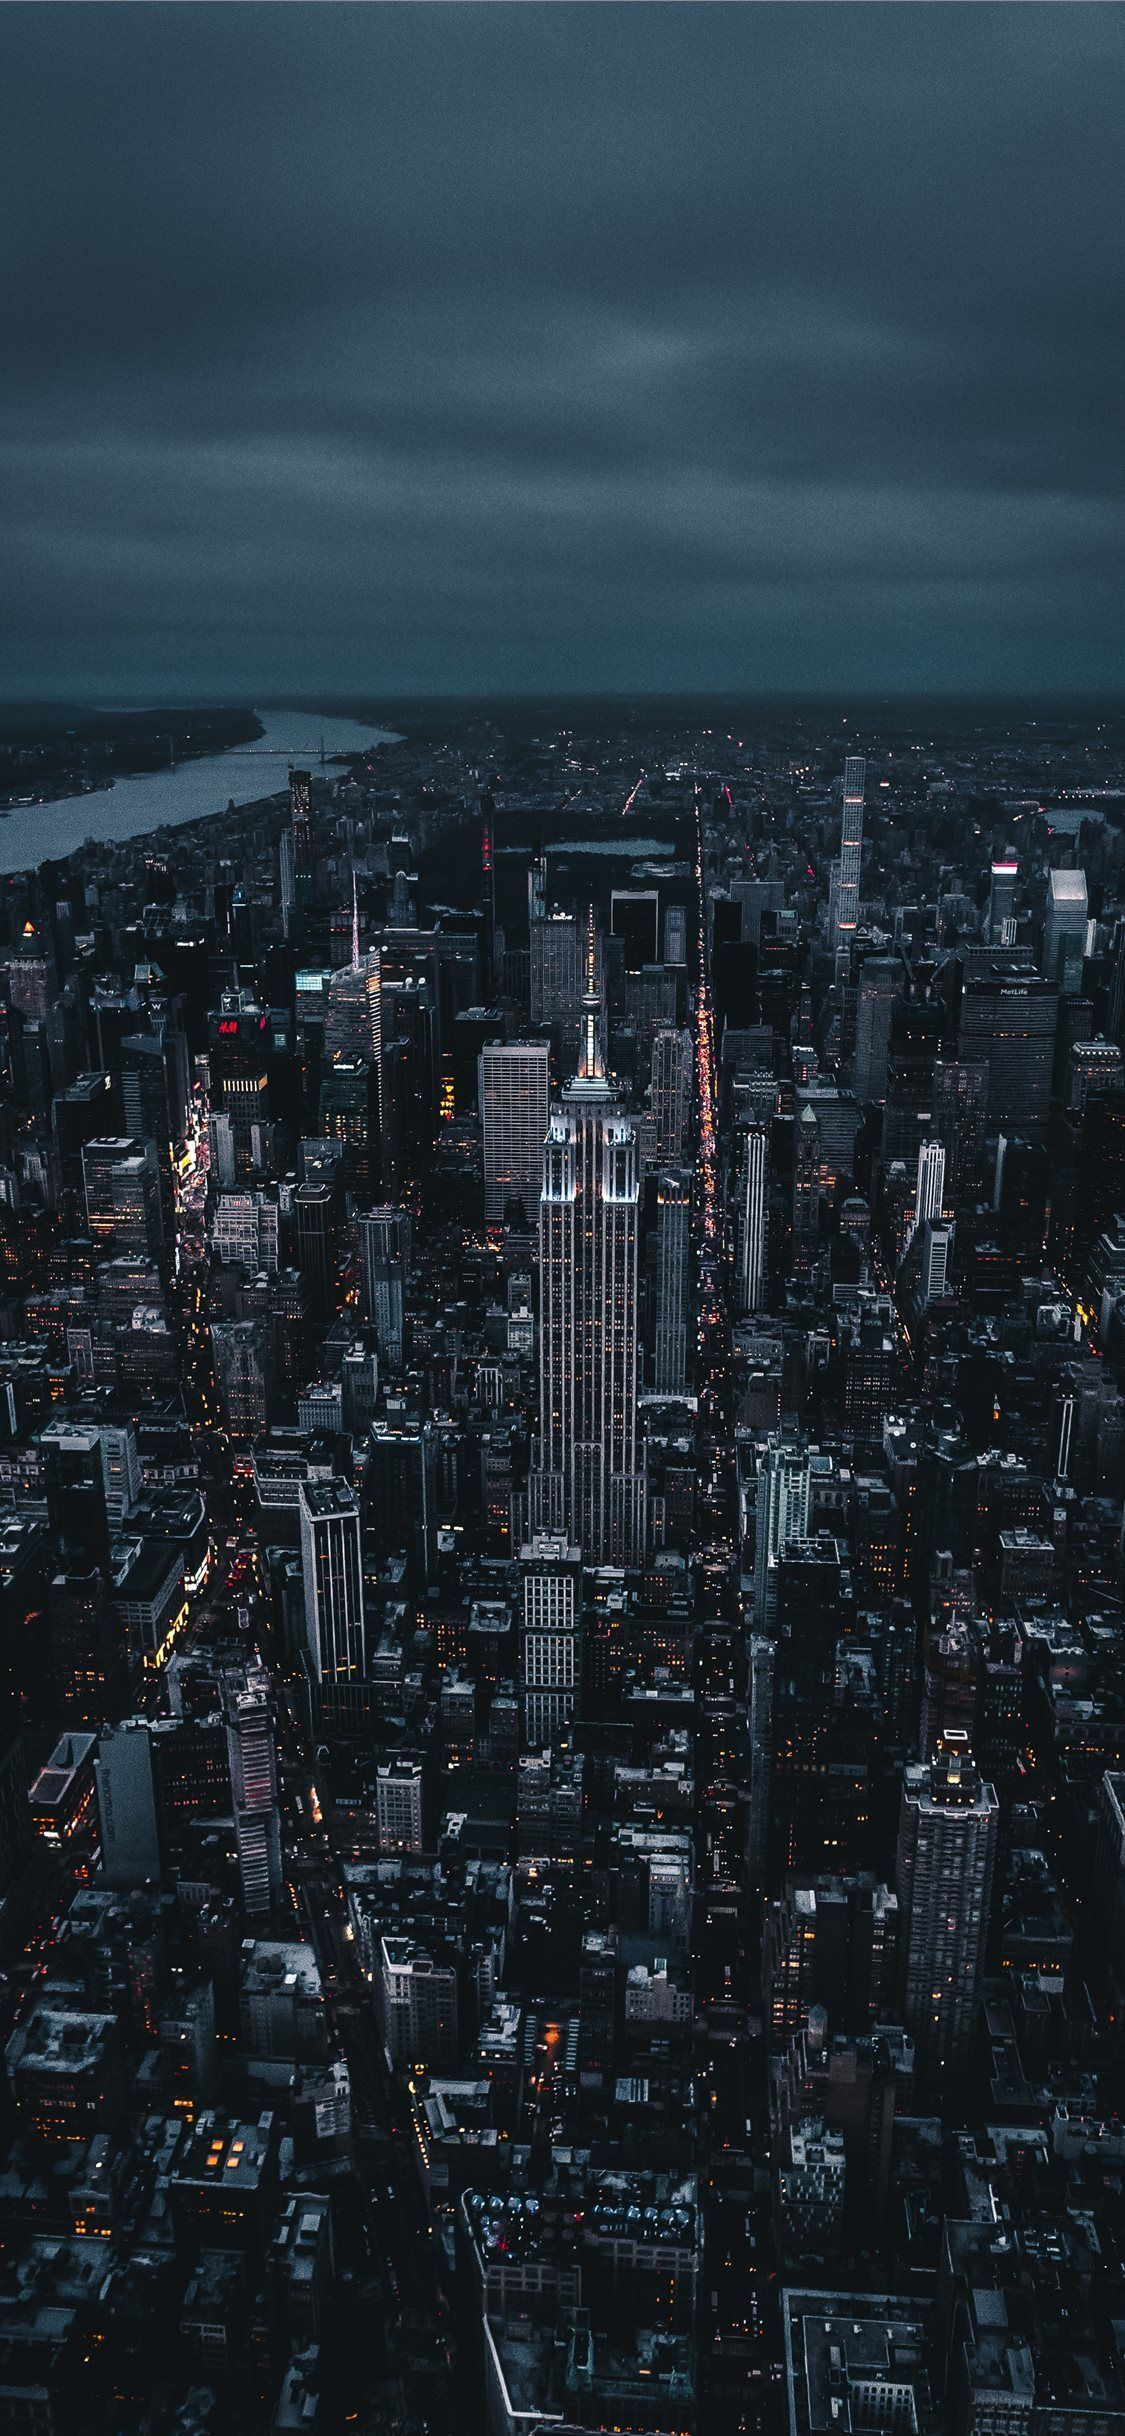 Places New York Usa Night Skyscrapers Android Wallpapers 4k Hd Iphone Wallpaper Japan Android Wallpaper Infinity Wallpaper